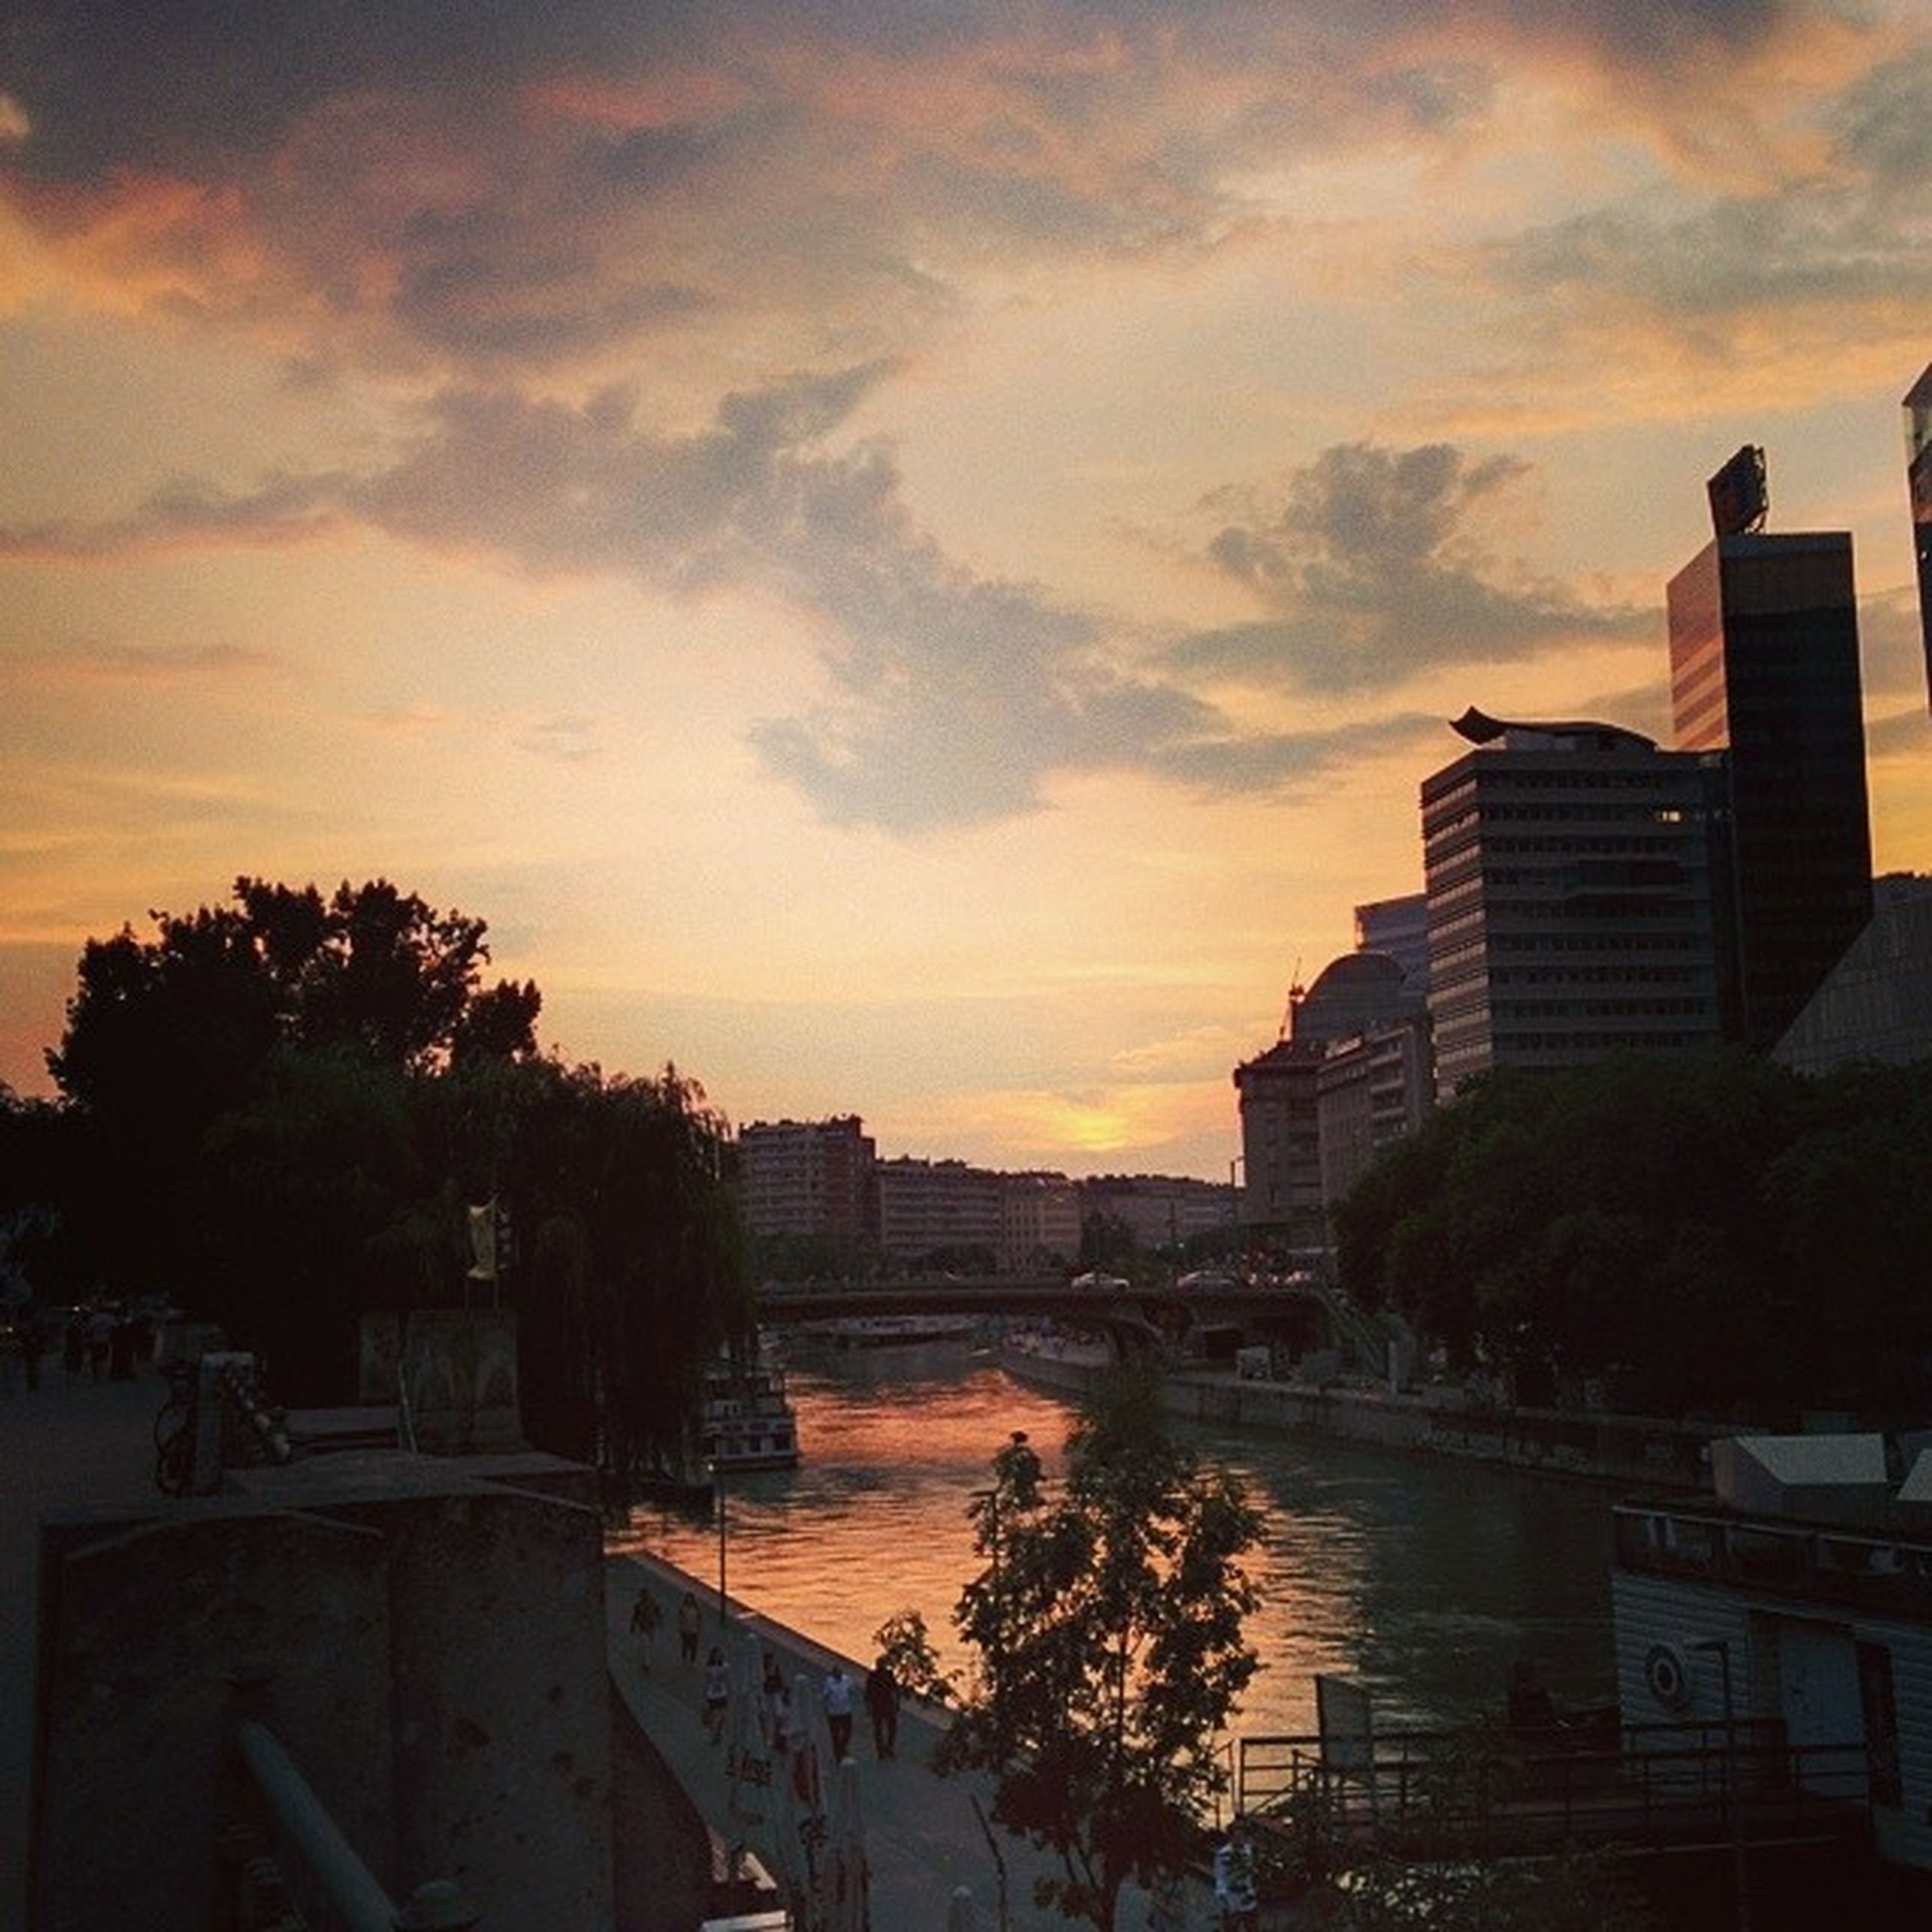 sunset, architecture, building exterior, built structure, sky, tree, cloud - sky, water, city, orange color, river, cloudy, nature, beauty in nature, transportation, railing, cloud, outdoors, residential building, high angle view